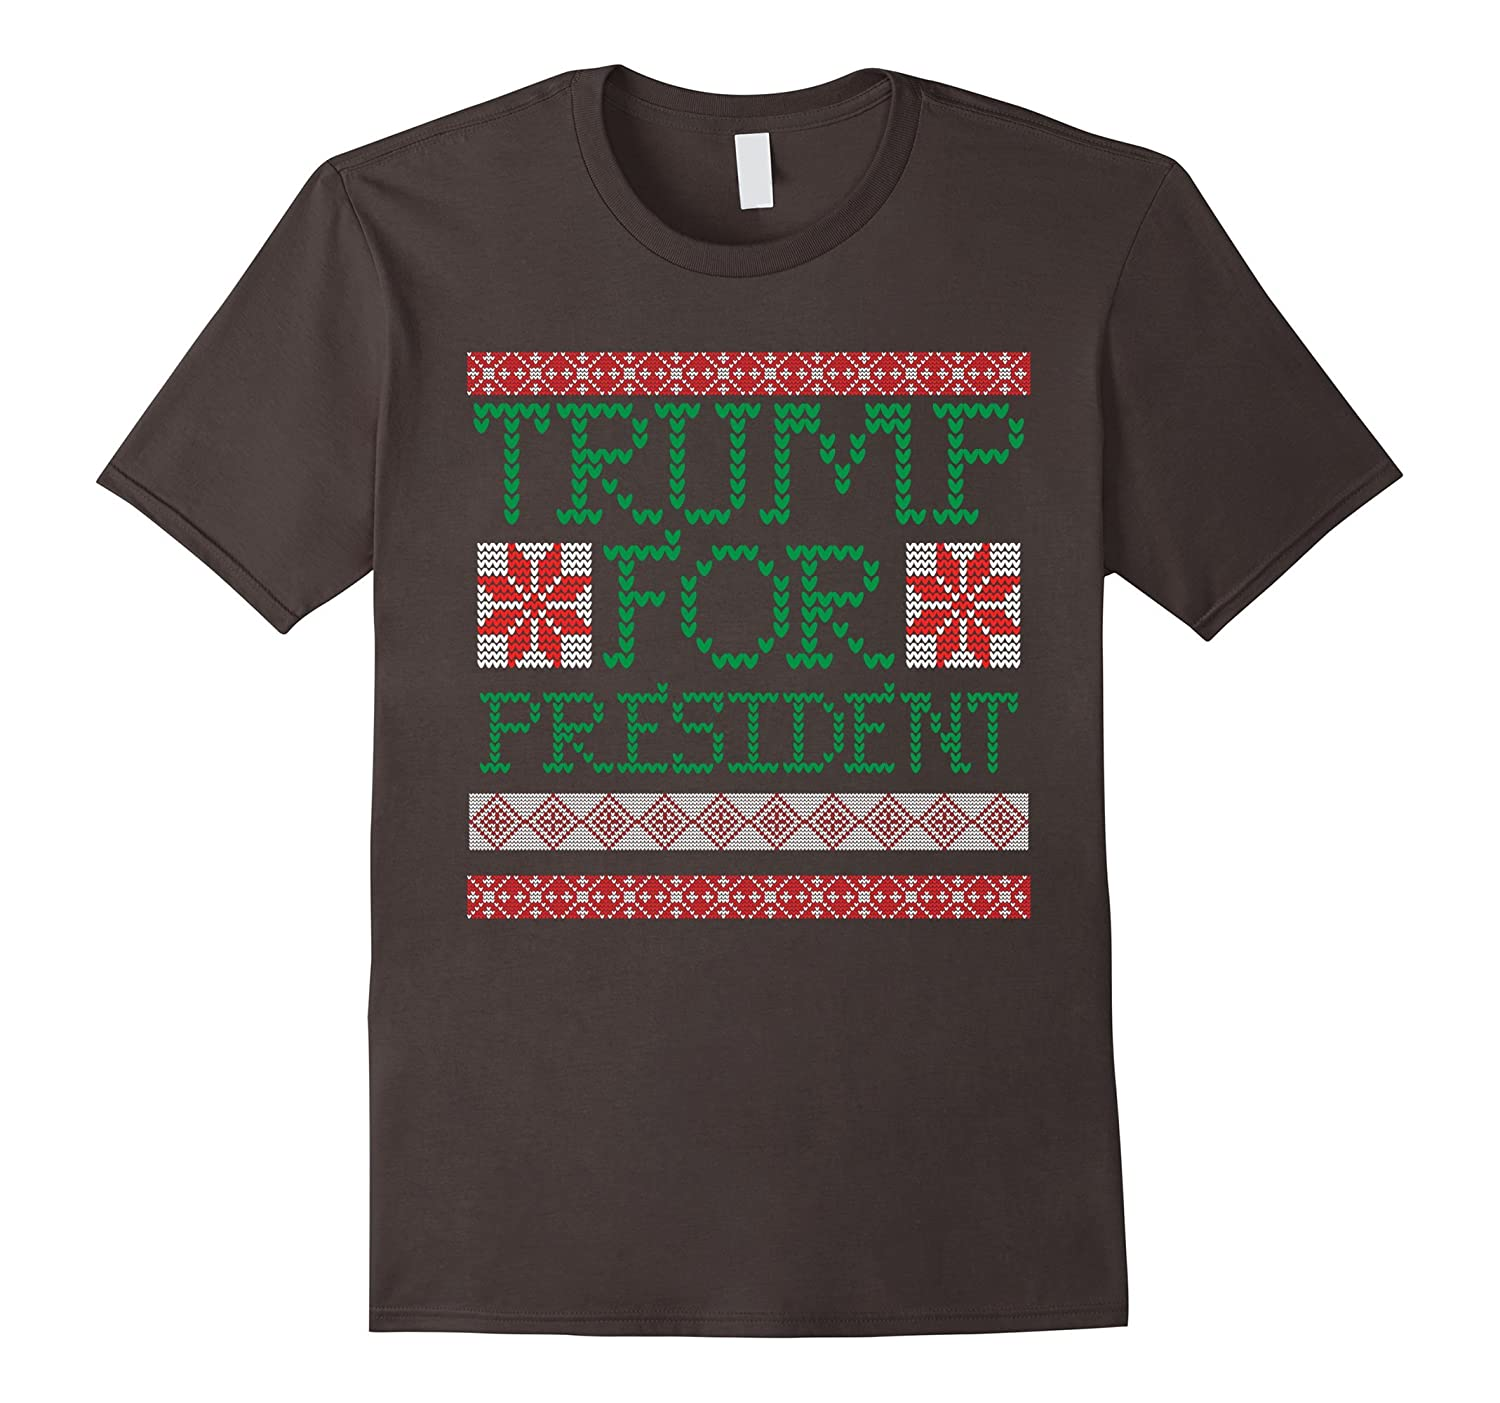 Donald Trump for President Ugly Christmas Sweater T-shirt